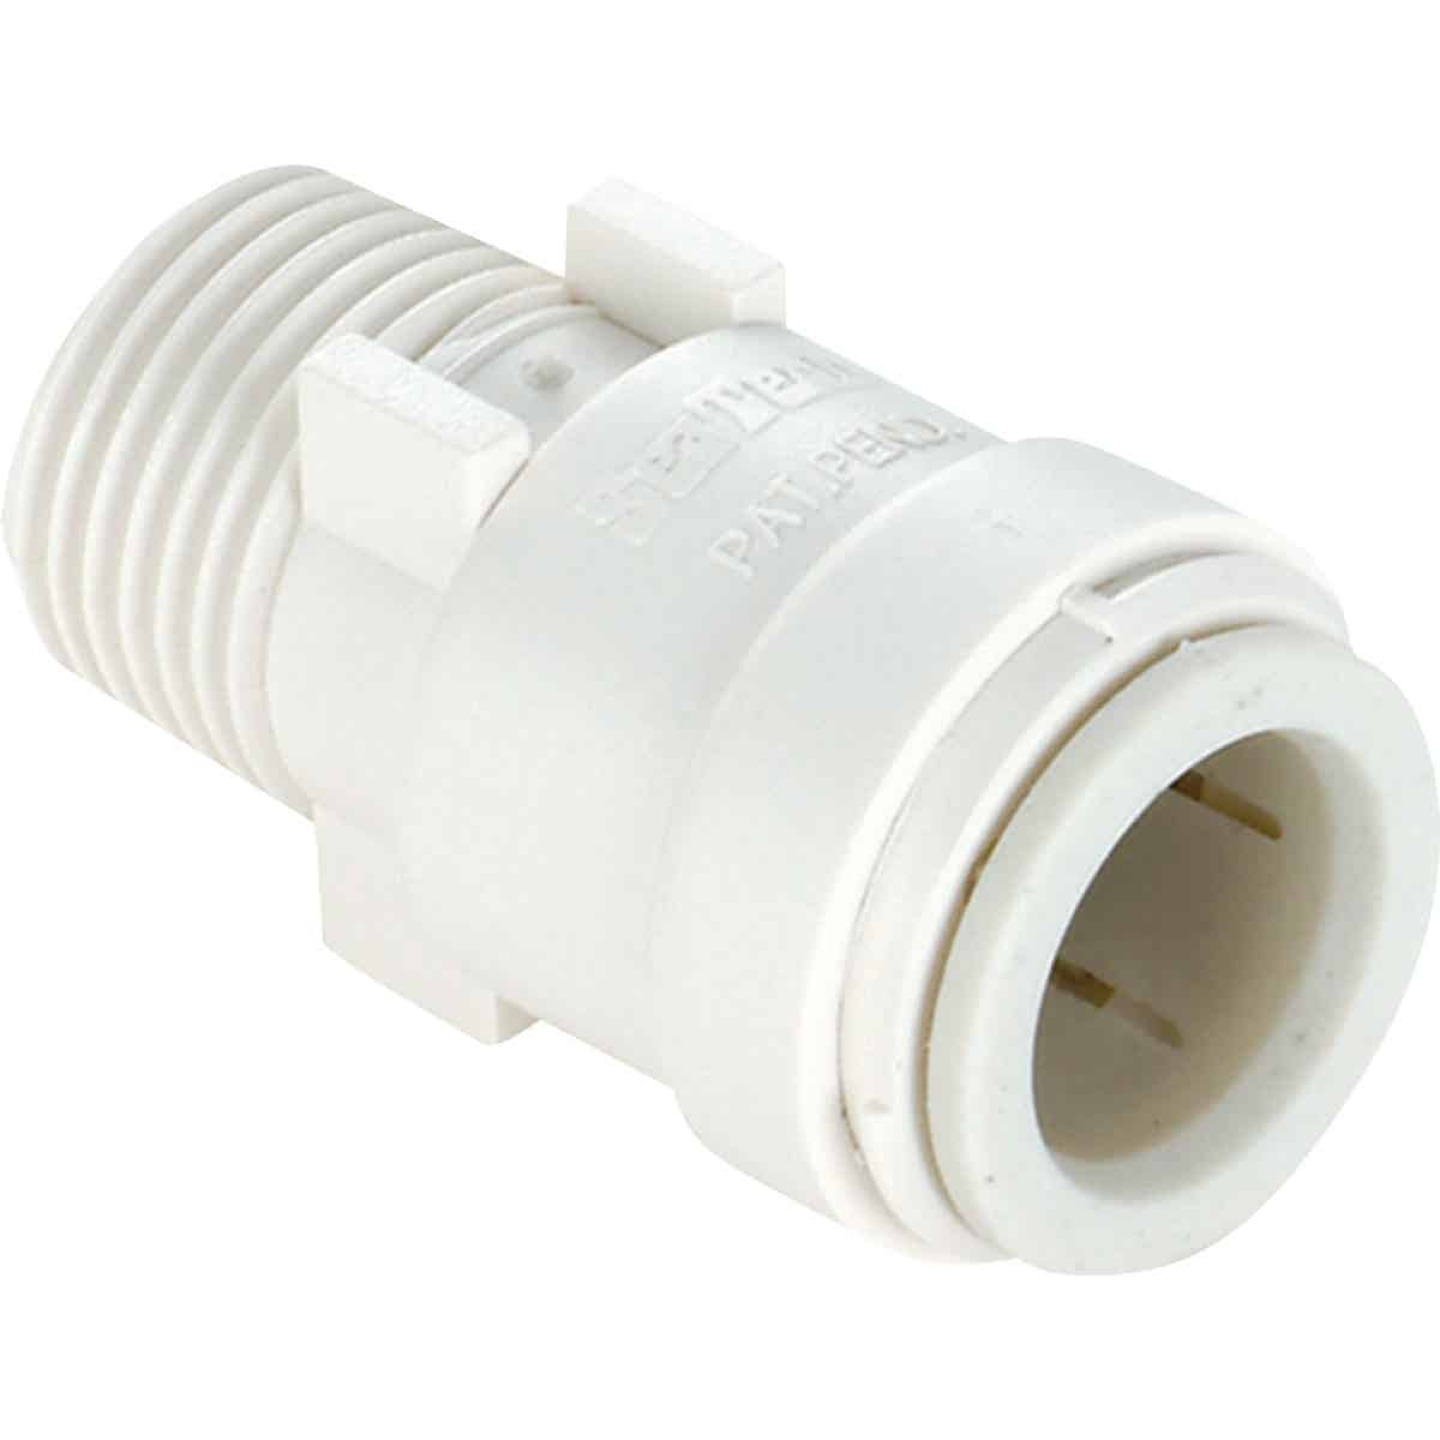 Watts 1/2 In. CTS x 1/2 In. MPT Quick Connect Plastic Connector Image 2